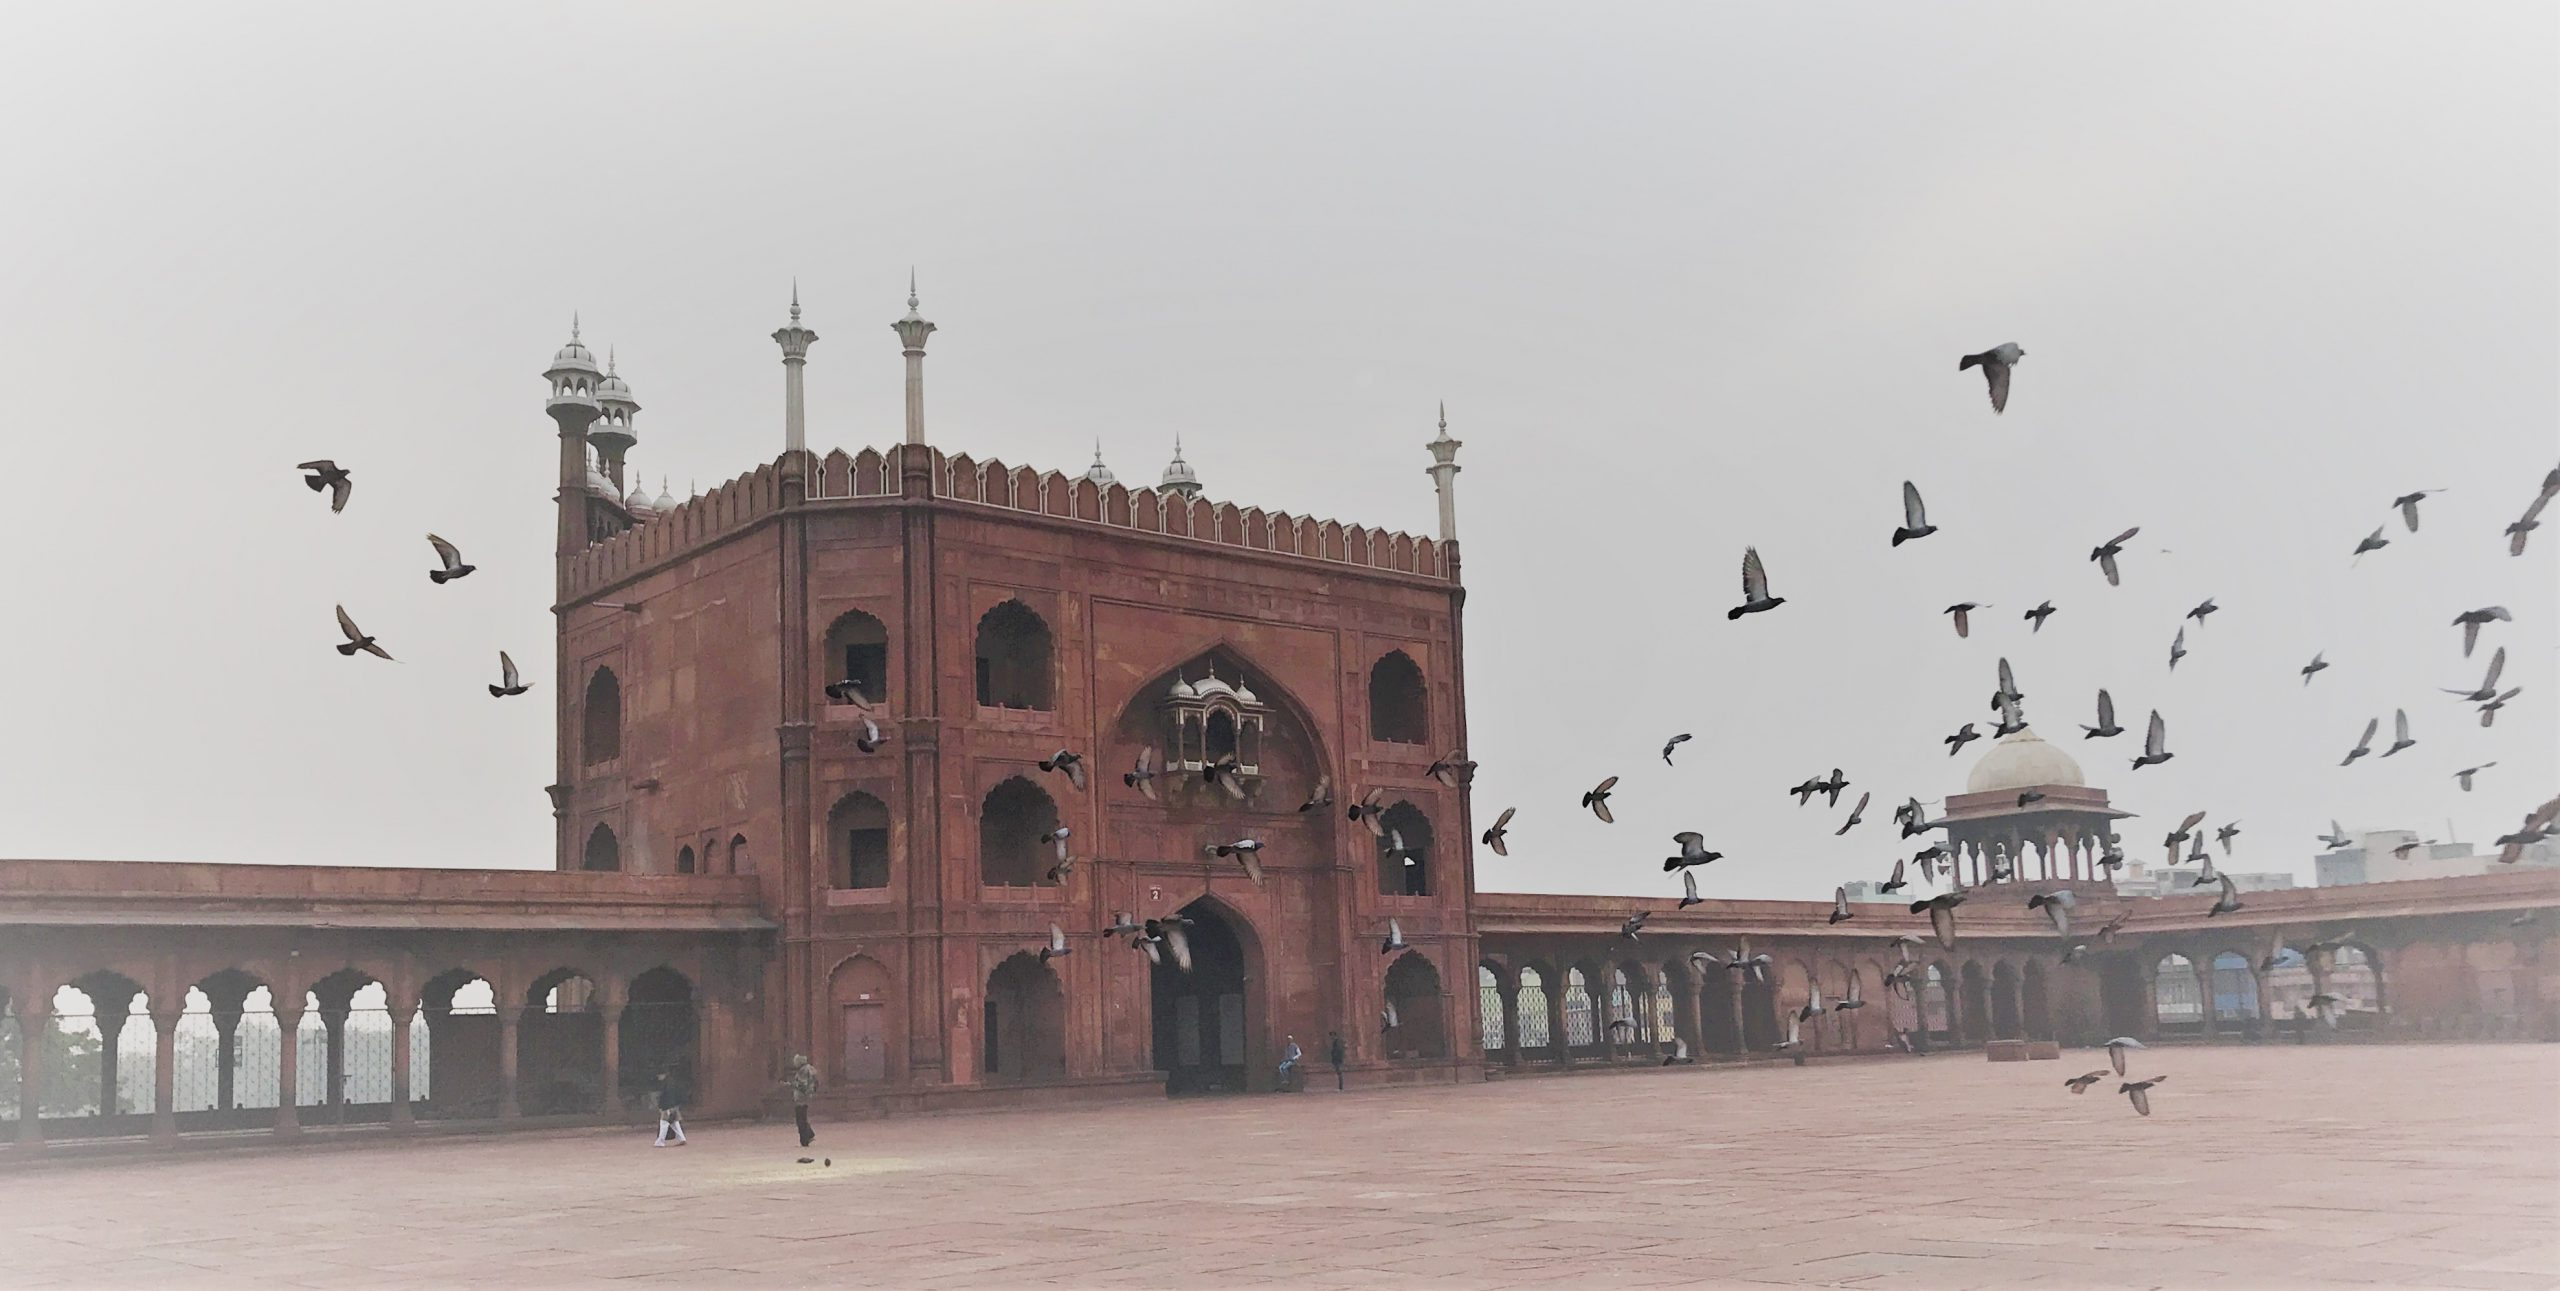 Jama Masjid (Friday Mosque) in Delhi, India. One of the top sights in Delhi.